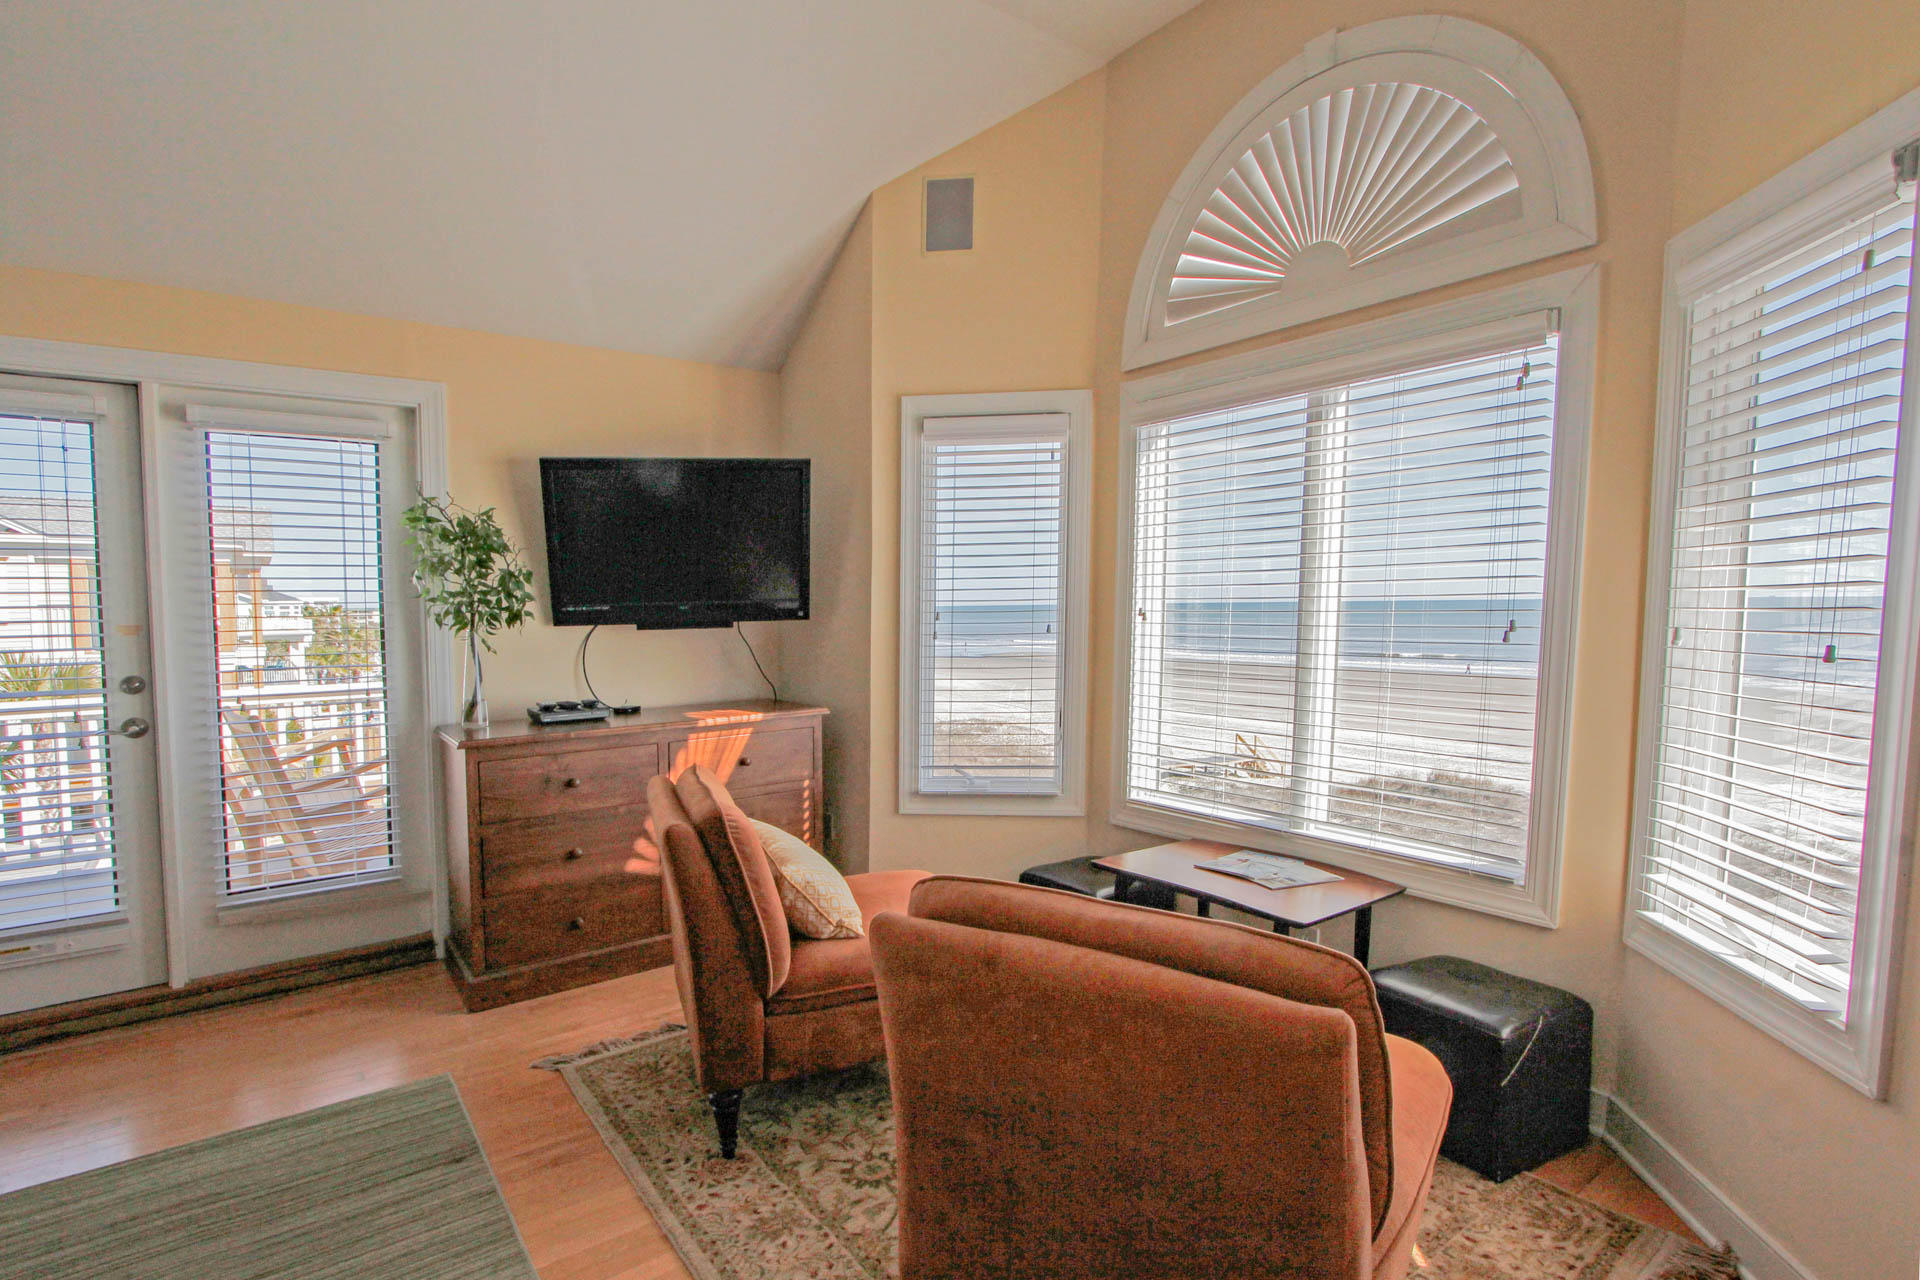 Isle of Palms Homes For Sale - 810 Ocean, Isle of Palms, SC - 14